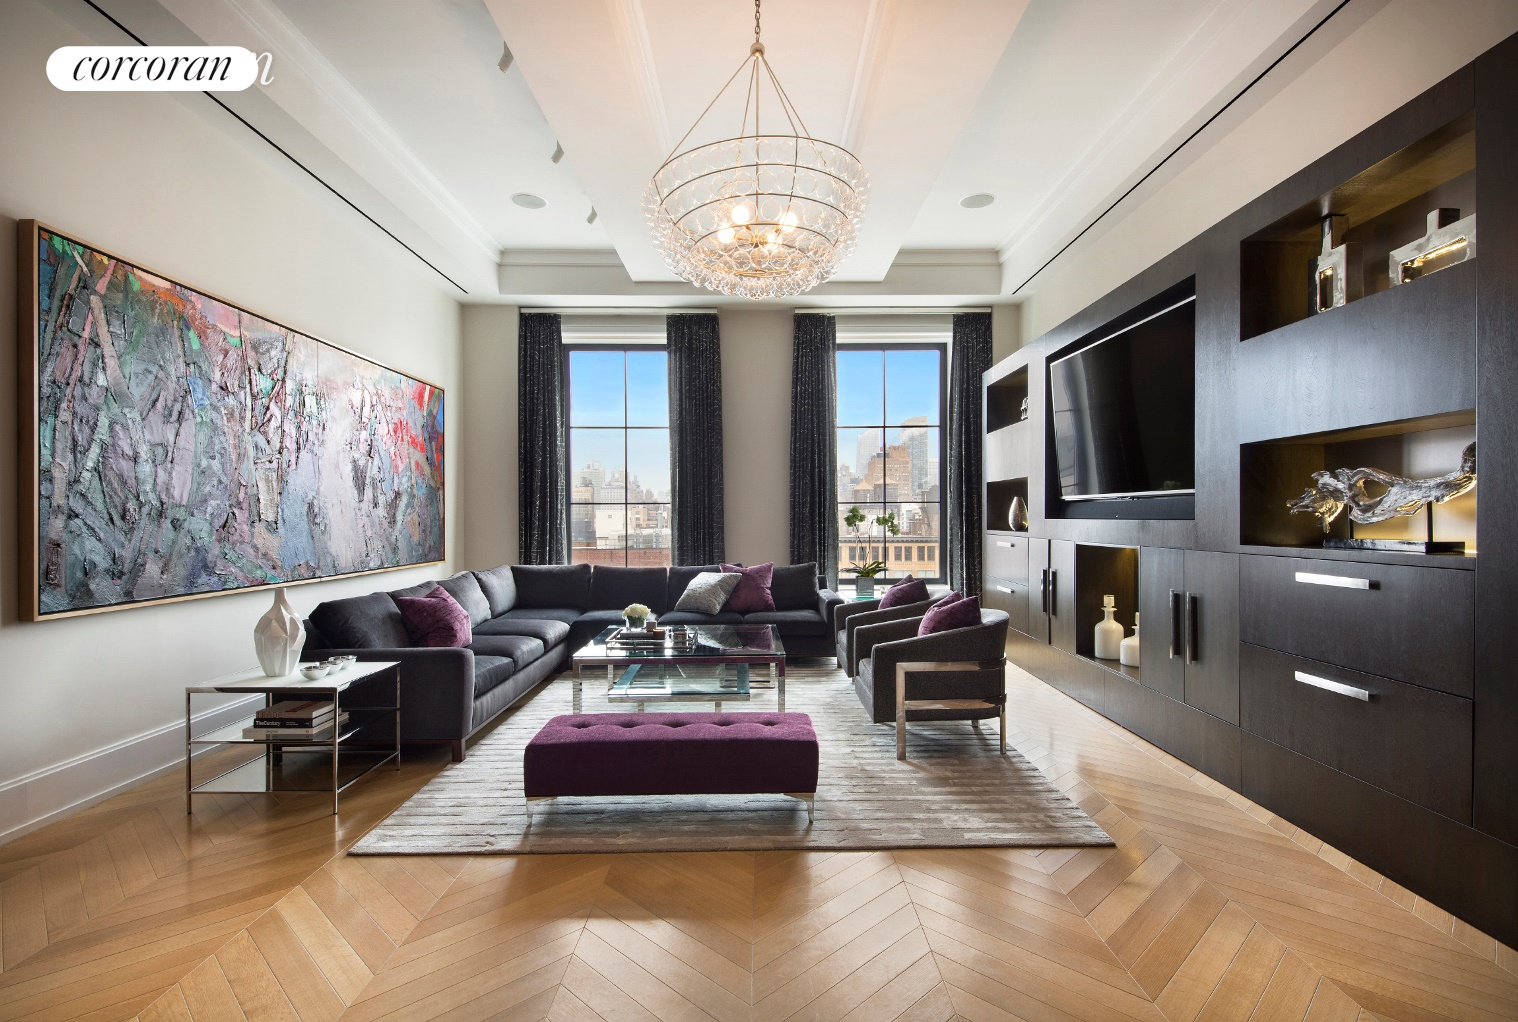 ALSO OFFERED FOR FURNISHED RENT!An exquisite and spacious four-bedroom, four-and-a-half-bath residence with two master suites, custom designed with premium upgrades in Chelsea's Walker Tower.Oversized tilt-and-turn windows in every room of this almost 3,900 SF corner home with views facing South, West and North. French herringbone oak flooring and up to 12 ft ceilings set an elegant tone throughout. Enjoy loft-like proportions in the massive great room lined with a wall of custom built-ins, while the Smallbone kitchen features marble and limestone countertops, Dornbracht fixtures, Sub-Zero refrigerator, fully vented induction cooktop with pot filler, two Viking wall ovens and a warming drawer, Miele speed oven and built-in coffee system, and a wine refrigerator.The sprawling master suite is a serene escape with grand dimensions. The en suite bathroom in floor-to-ceiling marble, features an inviting cast-iron soaking tub, frameless glass steam shower, extra-wide dual-sink vanity and Waterworks fixtures. A glamorous dressing room is flanked by two walk-in closets, with three additional closets providing even more storage. Three more complete bedroom suites line the western wing of the home, each with elegant wall-coverings, chic custom lighting, walk-in closets and gorgeous en suite bathrooms. No detail was overlooked in the design of this home. Radiant heat floors pave the entire residence; a Crestron Home Automation System attends to all controls; the large laundry closet features a fully vented dryer; and built-in zoned humidification system, ultra-quiet central air conditioning and ventilation ensures optimal temperature and air quality year-round.Designed by Ralph Thomas Walker, the building was originally built in 1929 and then converted to luxury condominium homes in 2012. Residents of Walker Tower enjoy 24-hour doorman and concierge service, a library lounge, state-of-the-art fitness center, playroom and a landscaped roof deck with dining area, sun lawn, obser